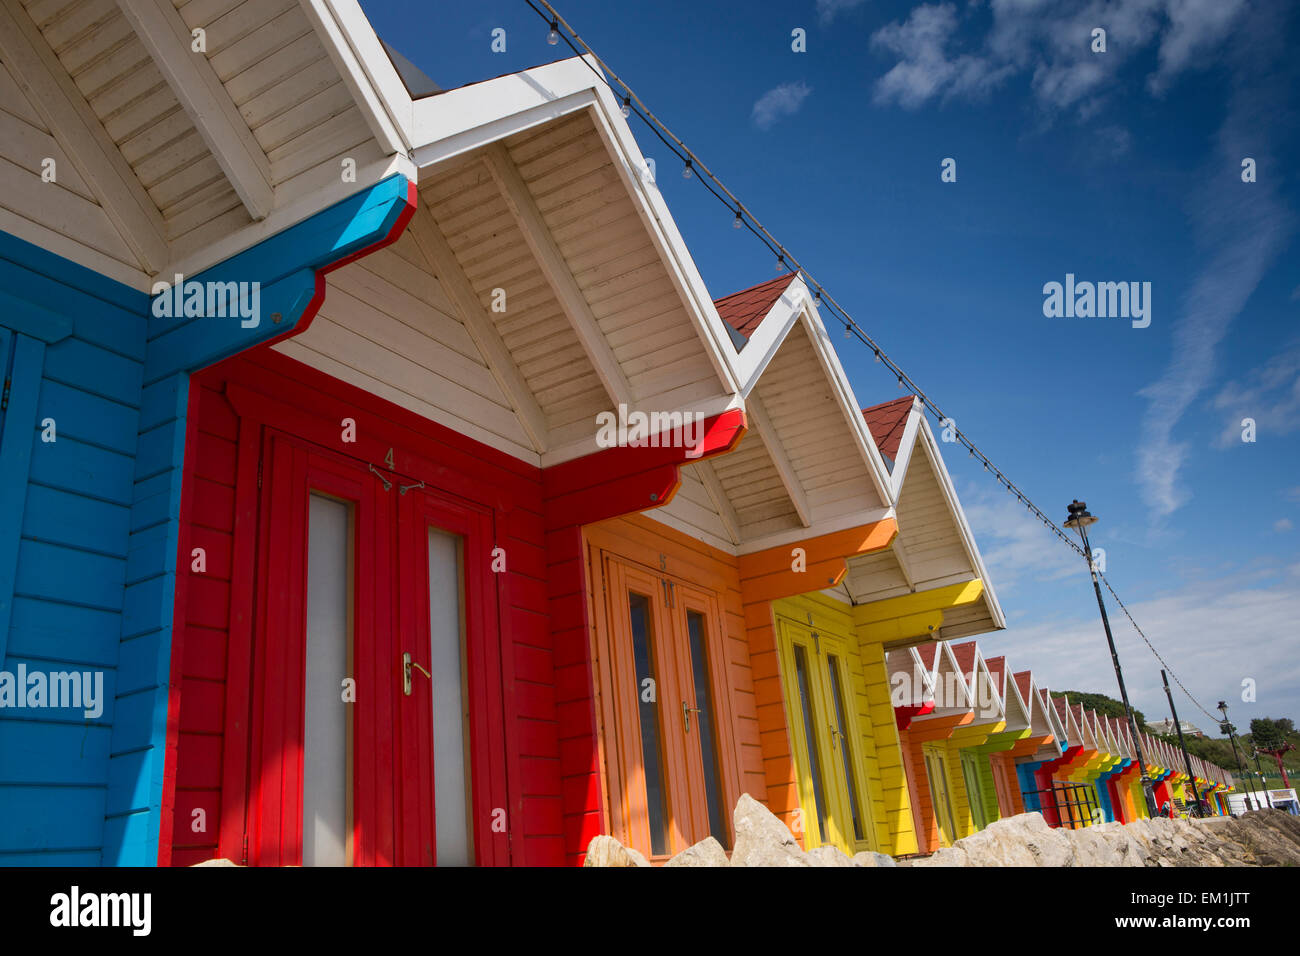 UK, England, Yorkshire, Scarborough, North Bay Promenade, colourfully painted beach huts - Stock Image